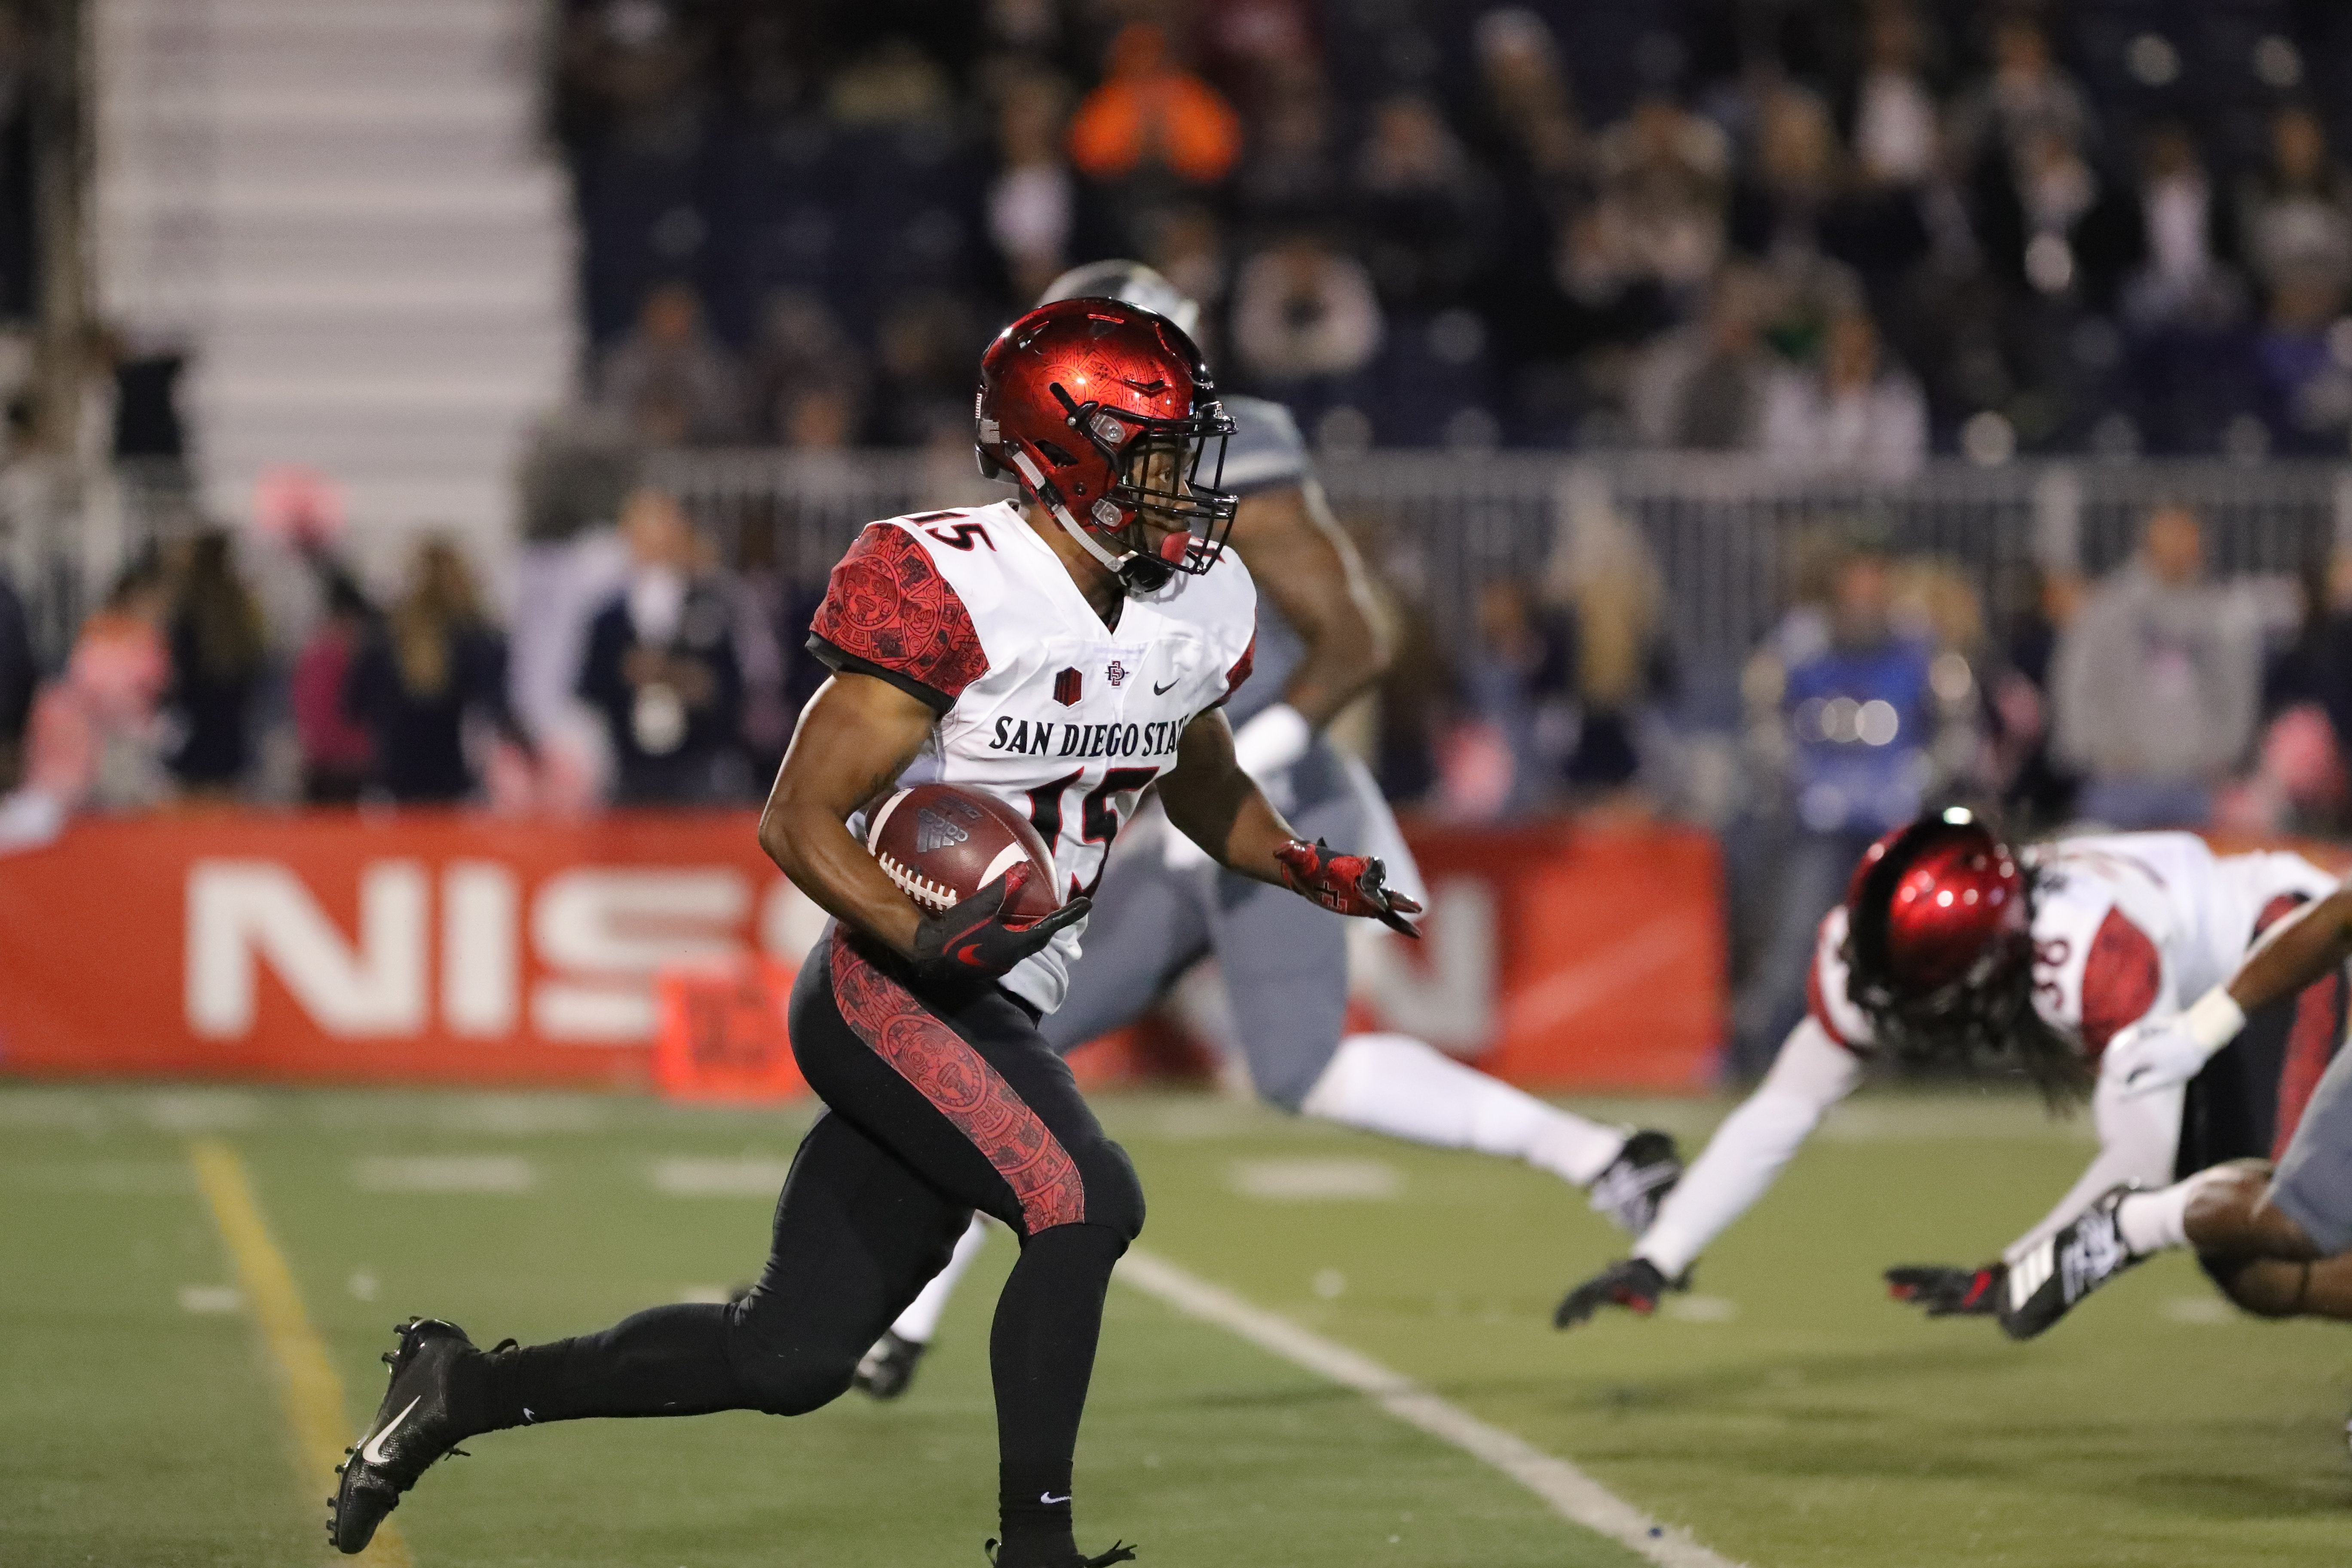 COLLEGE FOOTBALL: OCT 27 San Diego State at Nevada